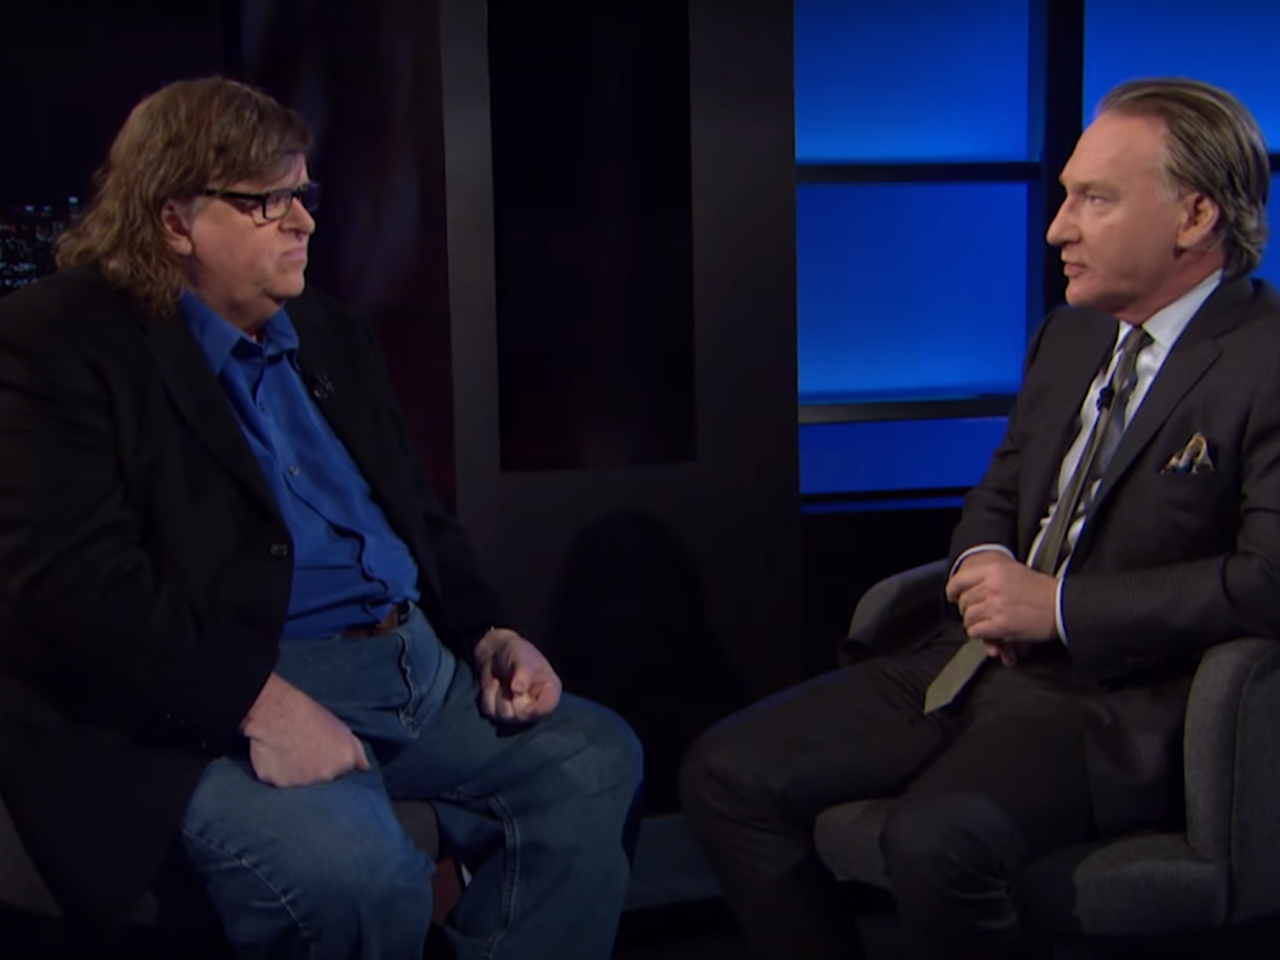 """""""This was a hate crime"""": Michael Moore tells Bill Maher that GOP's """"race hatred"""" caused Flint crisis - Salon.com"""